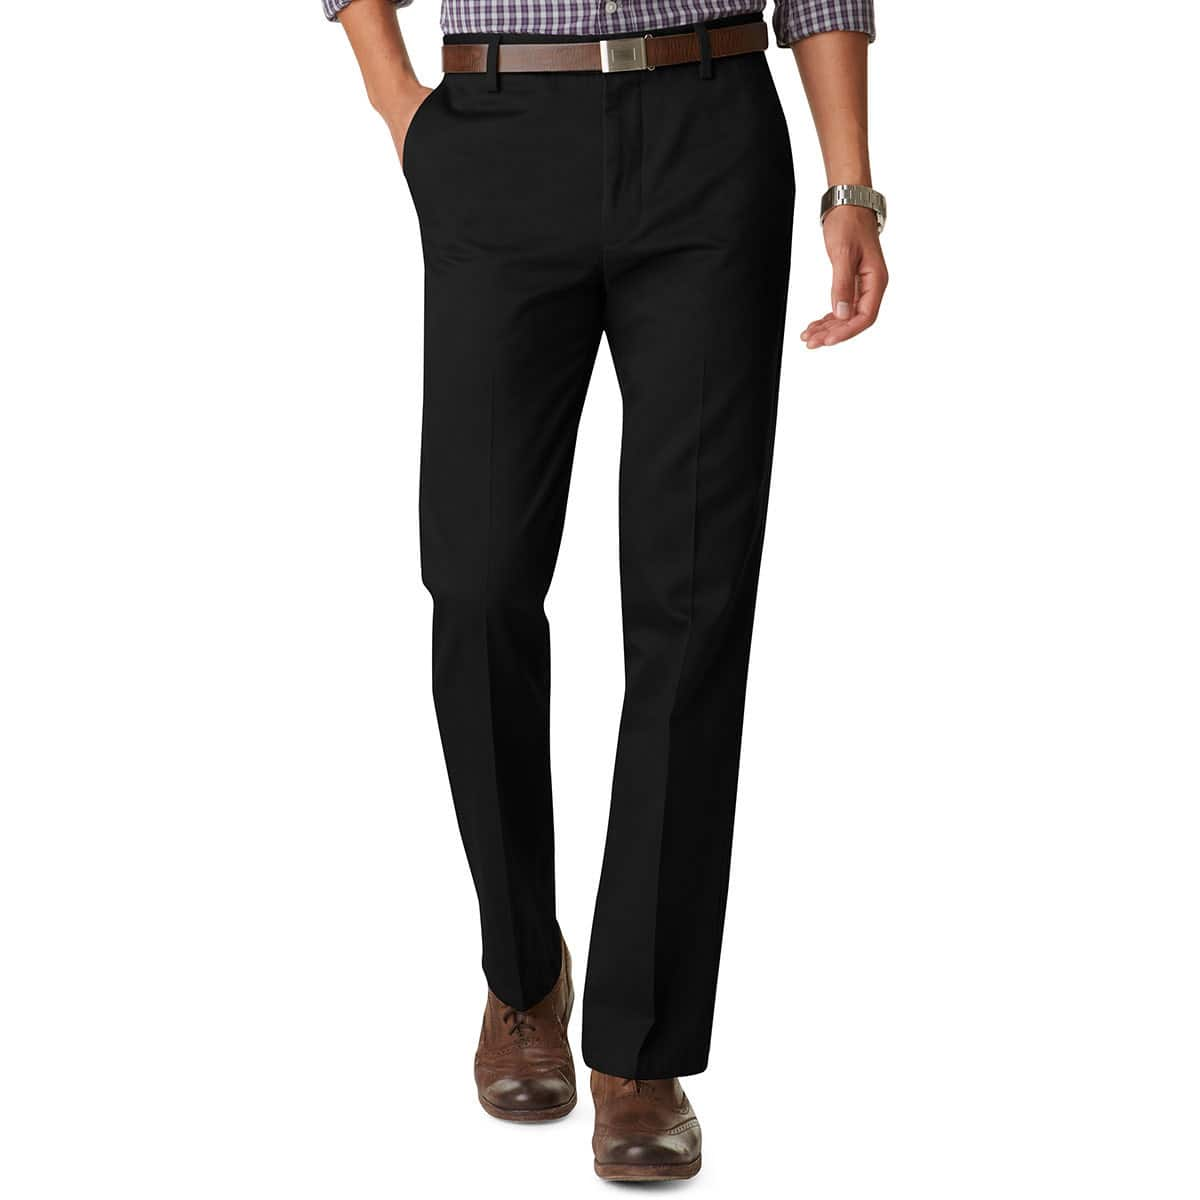 Men's Select Dockers Pants  2 for $46.40 + Free S/H